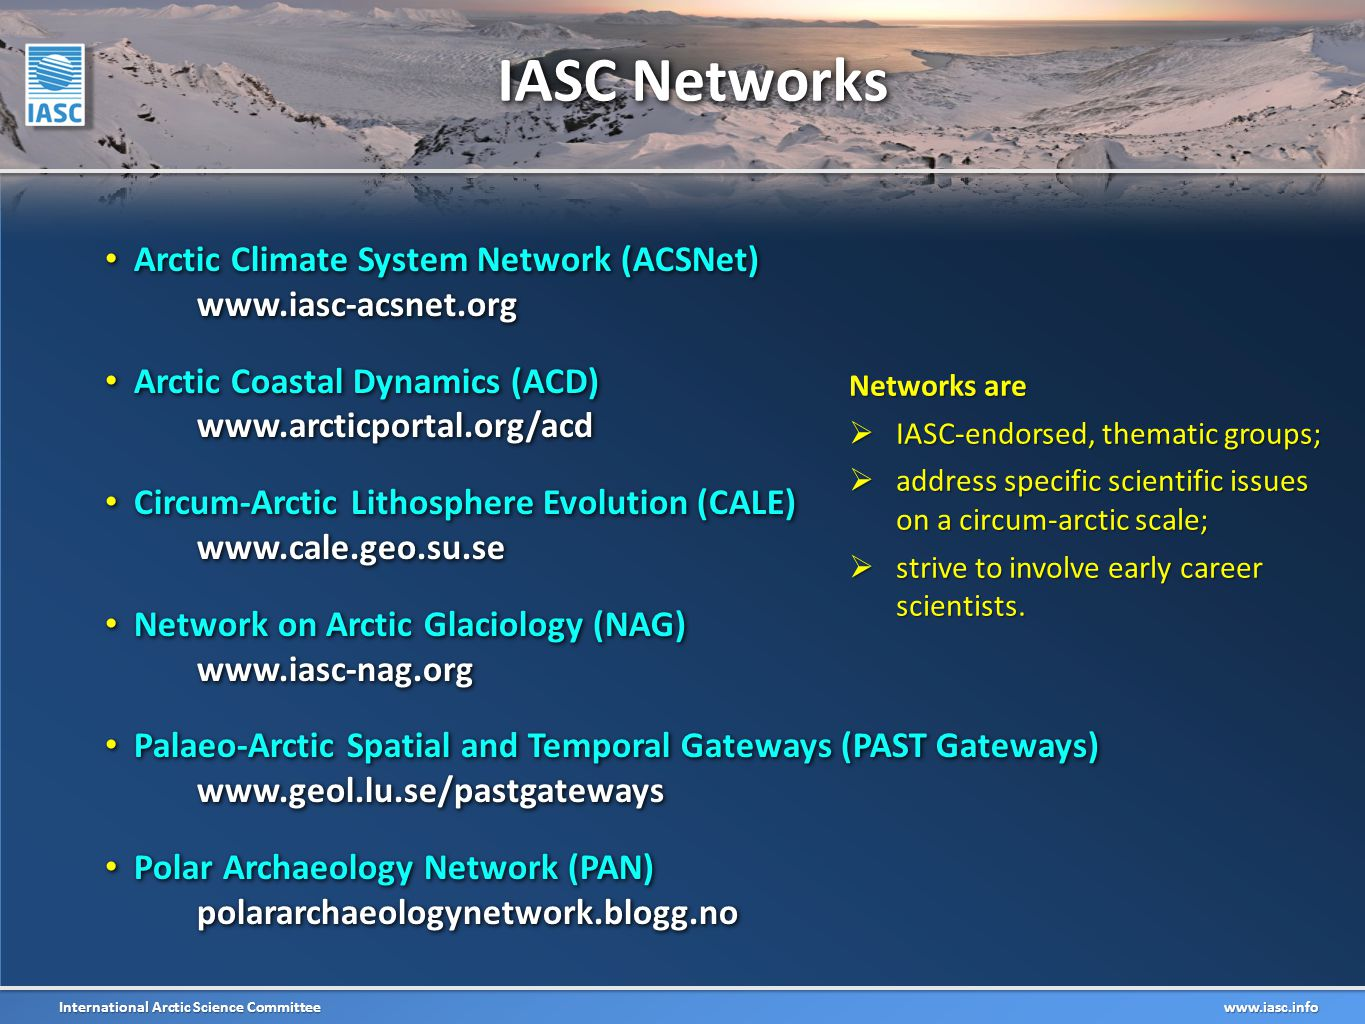 International Arctic Science Committee www.iasc.info Arctic Climate System Network (ACSNet) www.iasc-acsnet.org Arctic Climate System Network (ACSNet) www.iasc-acsnet.org Arctic Coastal Dynamics (ACD) www.arcticportal.org/acd Arctic Coastal Dynamics (ACD) www.arcticportal.org/acd Circum-Arctic Lithosphere Evolution (CALE) www.cale.geo.su.se Circum-Arctic Lithosphere Evolution (CALE) www.cale.geo.su.se Network on Arctic Glaciology (NAG) www.iasc-nag.org Network on Arctic Glaciology (NAG) www.iasc-nag.org Palaeo-Arctic Spatial and Temporal Gateways (PAST Gateways) www.geol.lu.se/pastgateways Palaeo-Arctic Spatial and Temporal Gateways (PAST Gateways) www.geol.lu.se/pastgateways Polar Archaeology Network (PAN) polararchaeologynetwork.blogg.no Polar Archaeology Network (PAN) polararchaeologynetwork.blogg.no IASC Networks Networks are  IASC-endorsed, thematic groups;  address specific scientific issues on a circum-arctic scale;  strive to involve early career scientists.